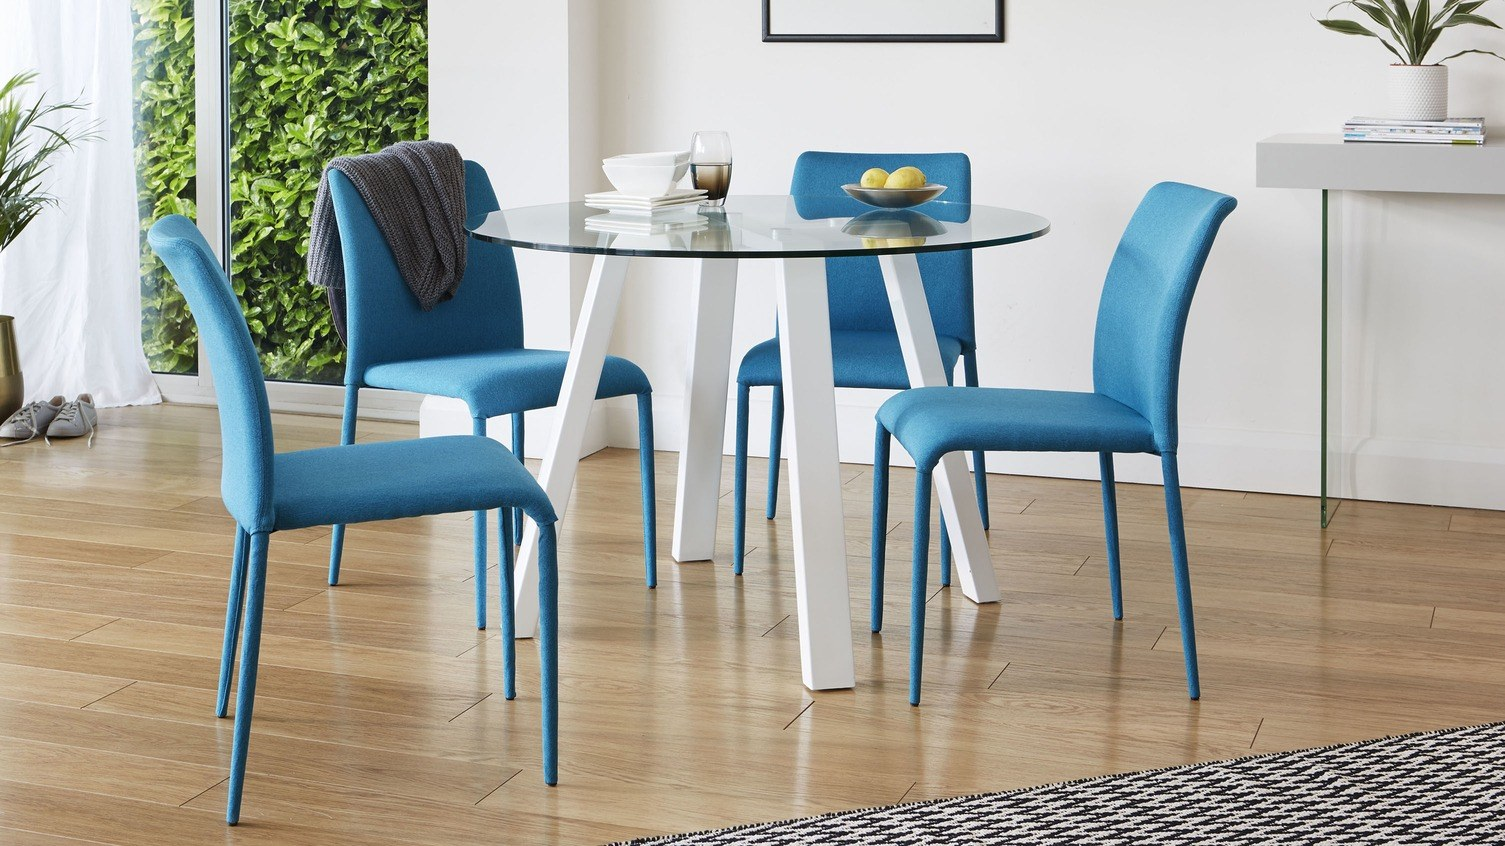 Dining Table Guide How To Choose The Perfect For Your Home